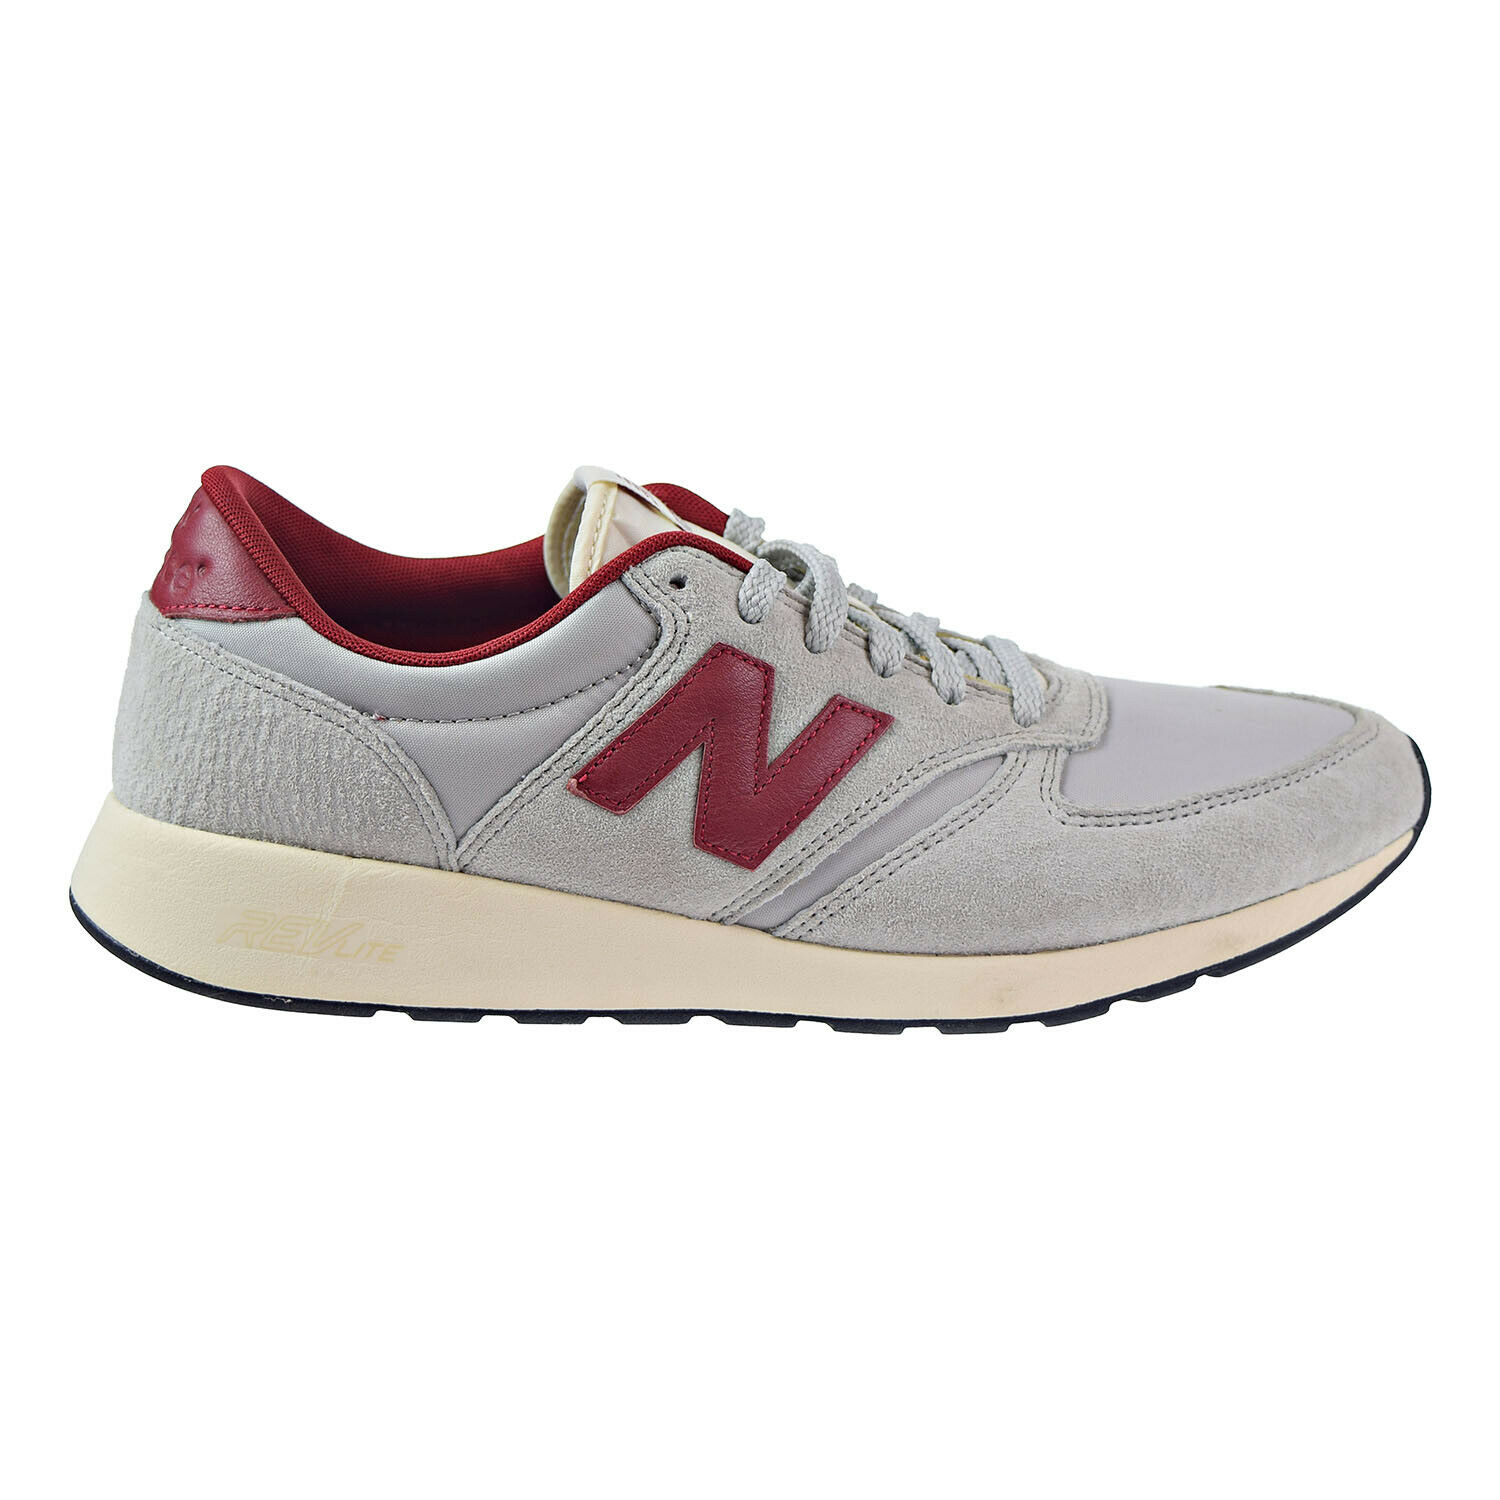 New Balance 420 Lifestyle Men's shoes Grey Red MRL420-ST